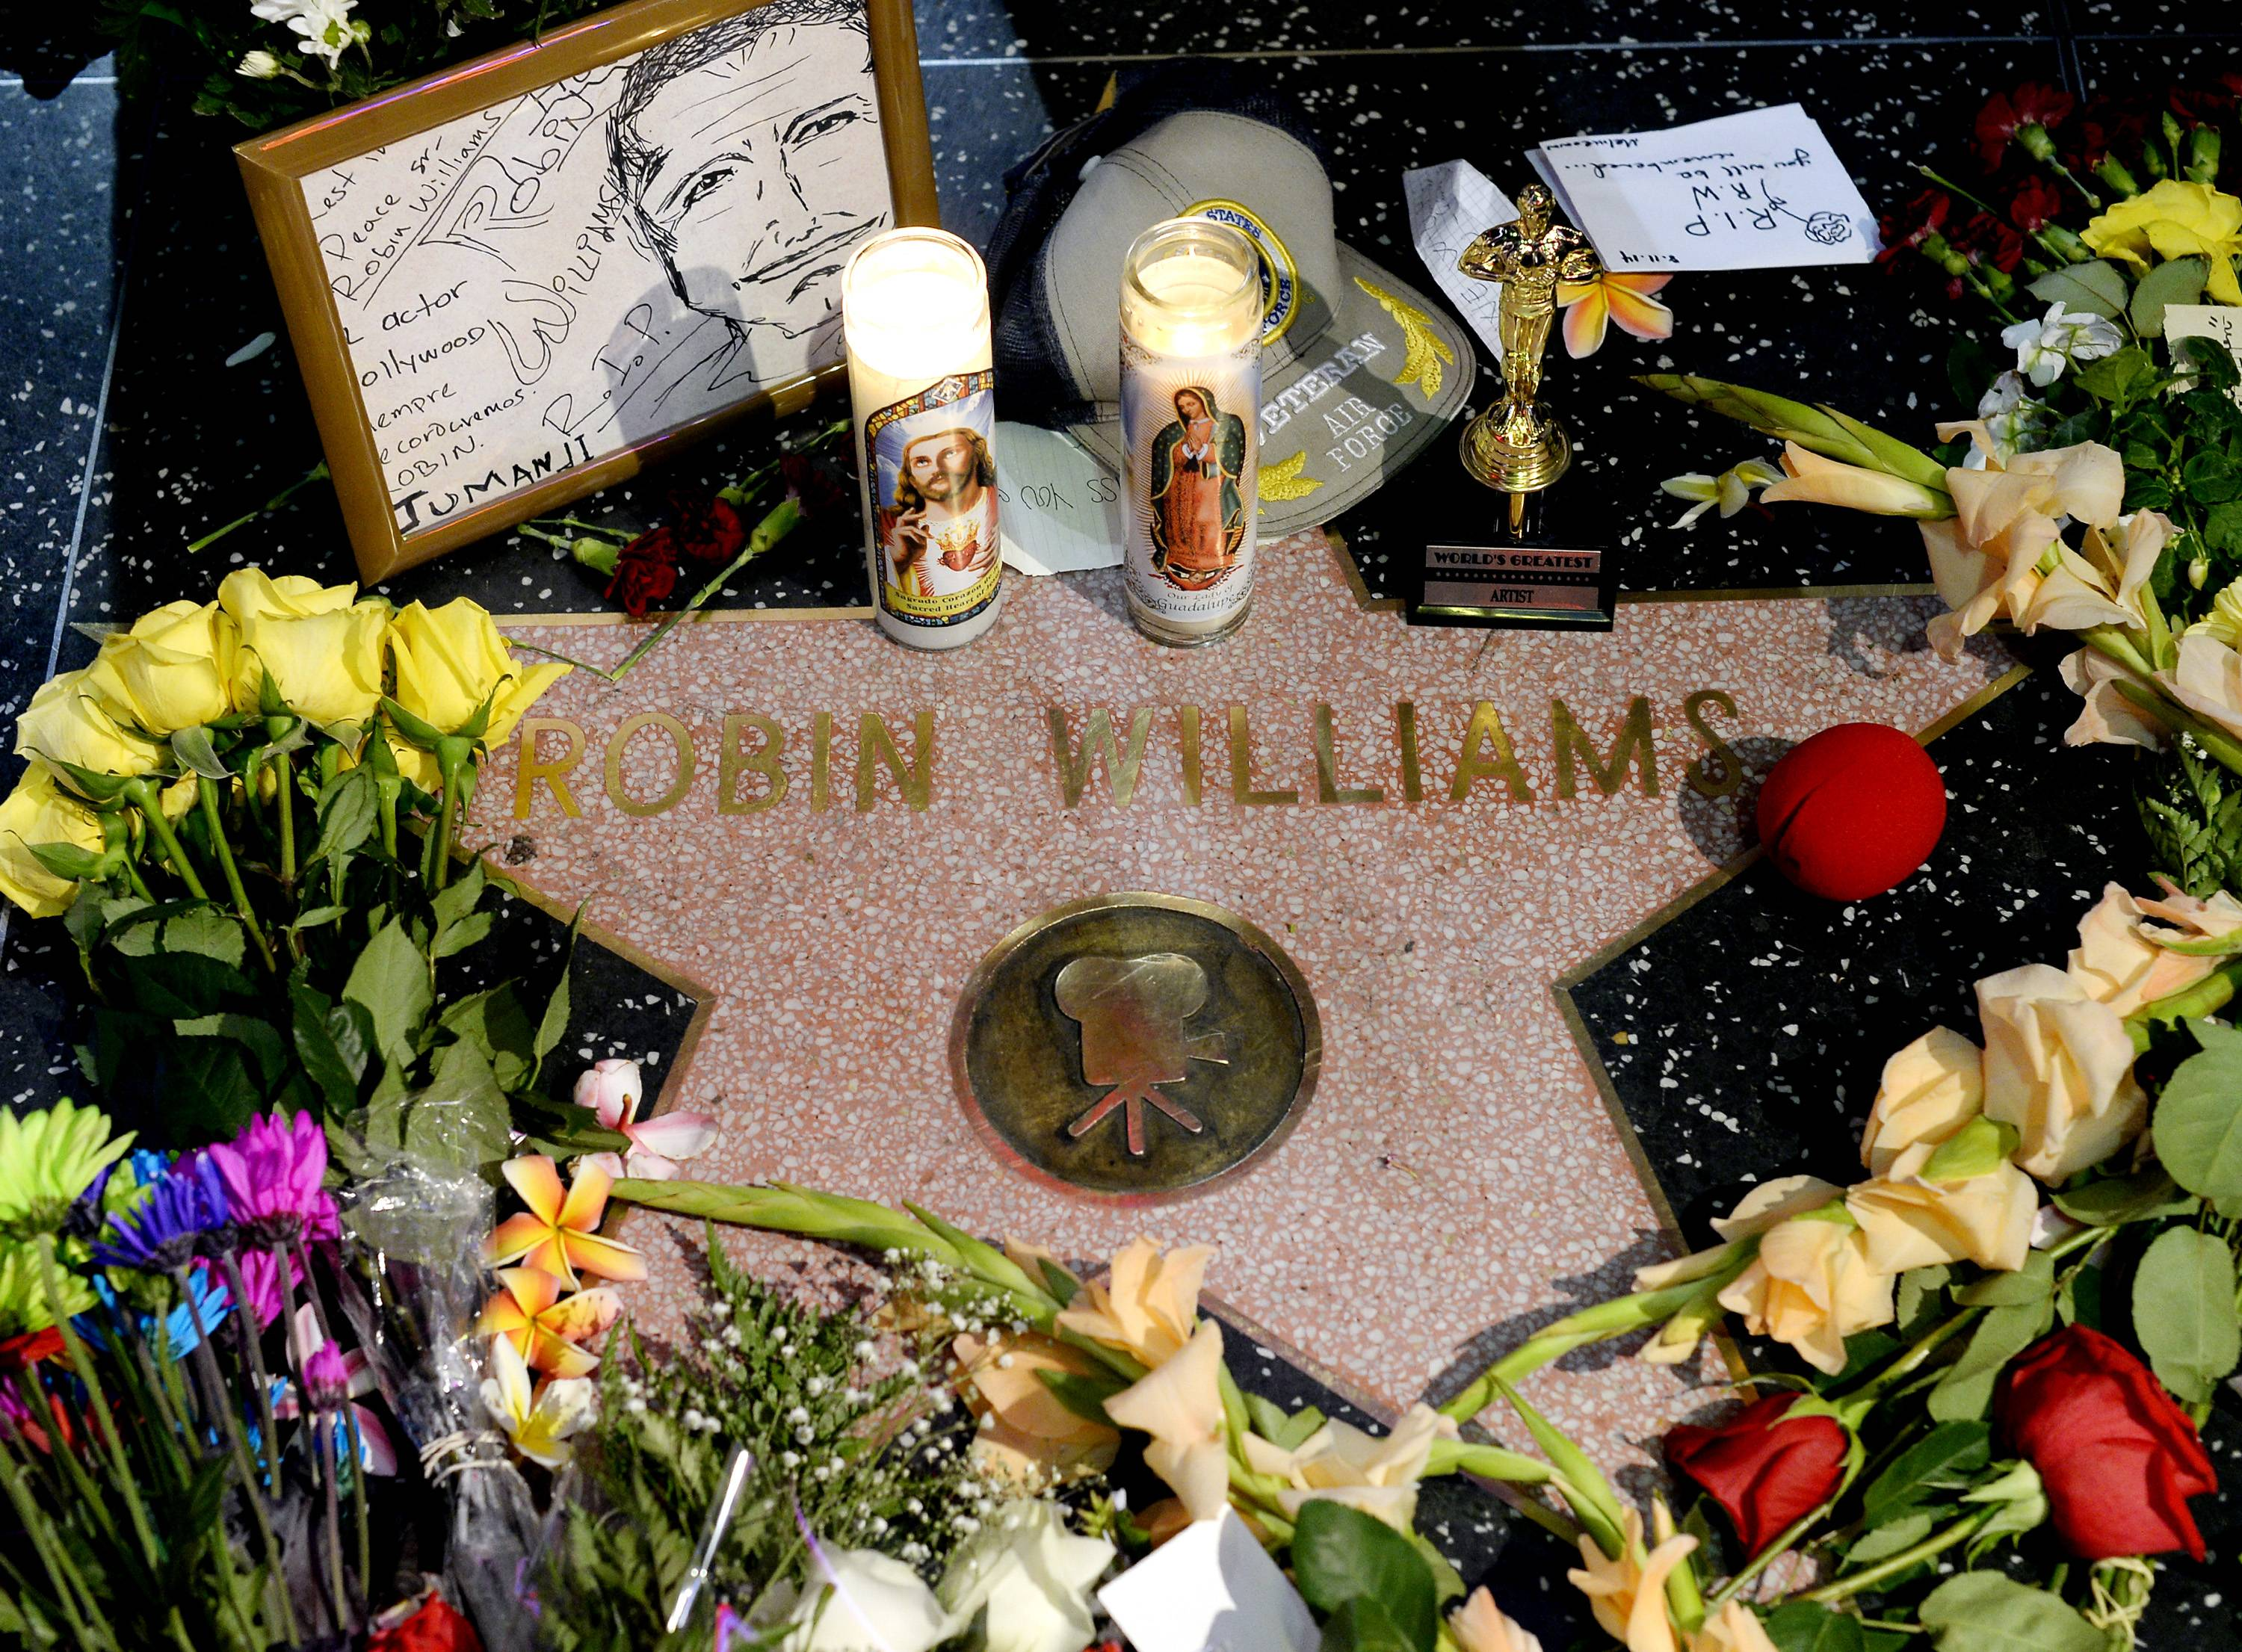 Robin Williams: Mourning a manic genius